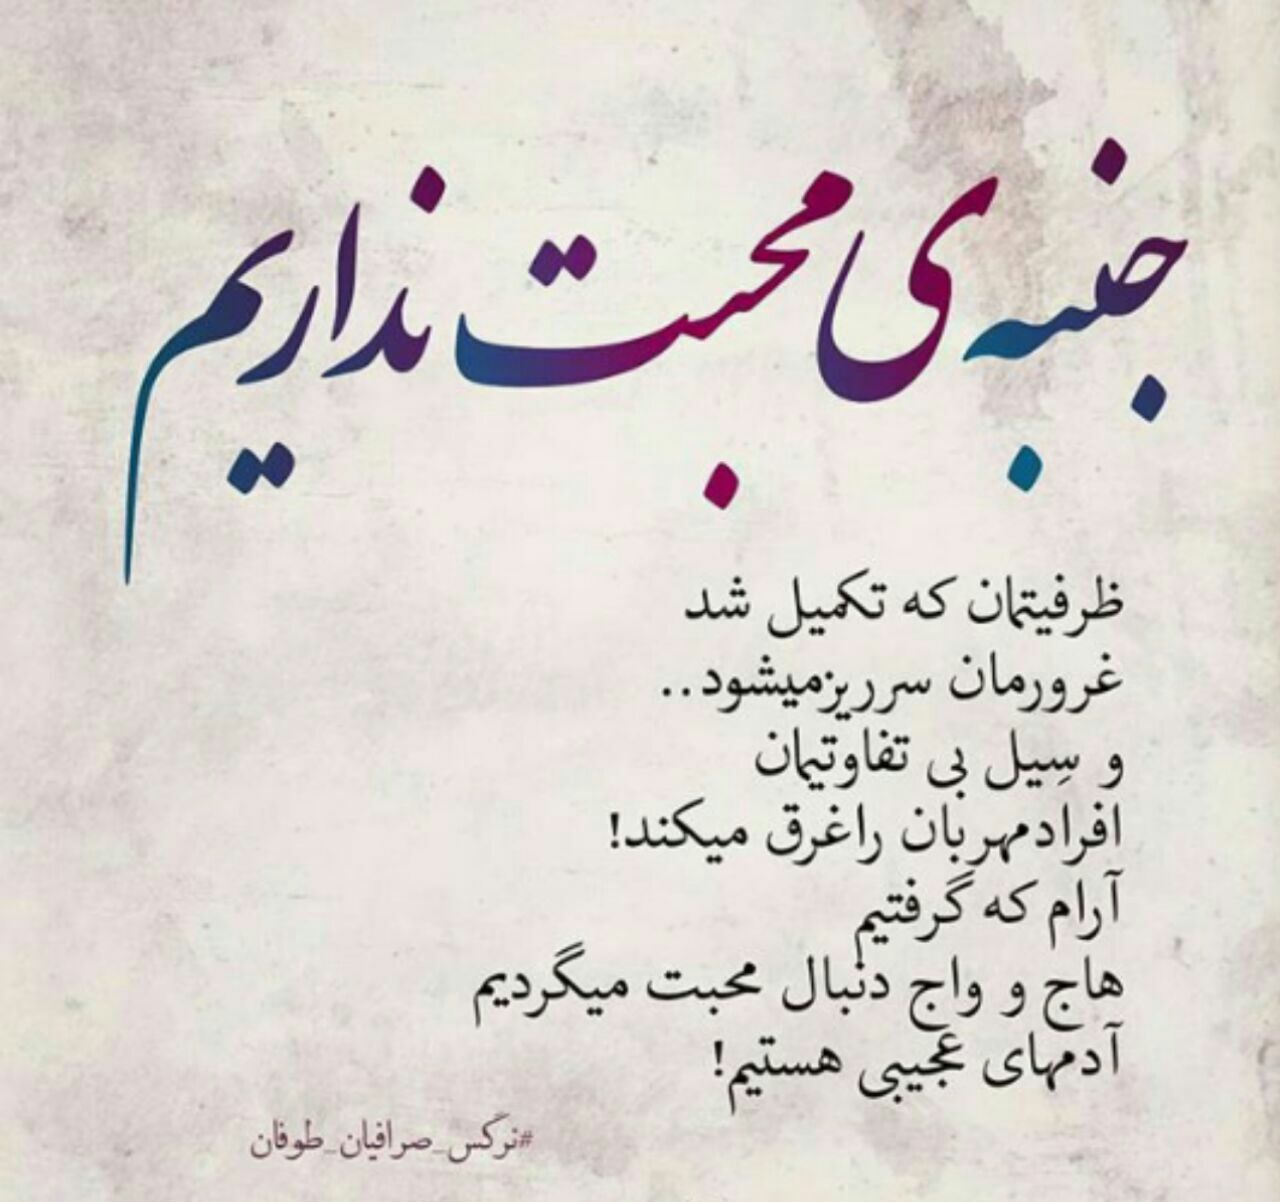 Pin By Mamad M On جملات انگیزشی Birthday Quotes For Best Friend Cool Words Comedian Quotes